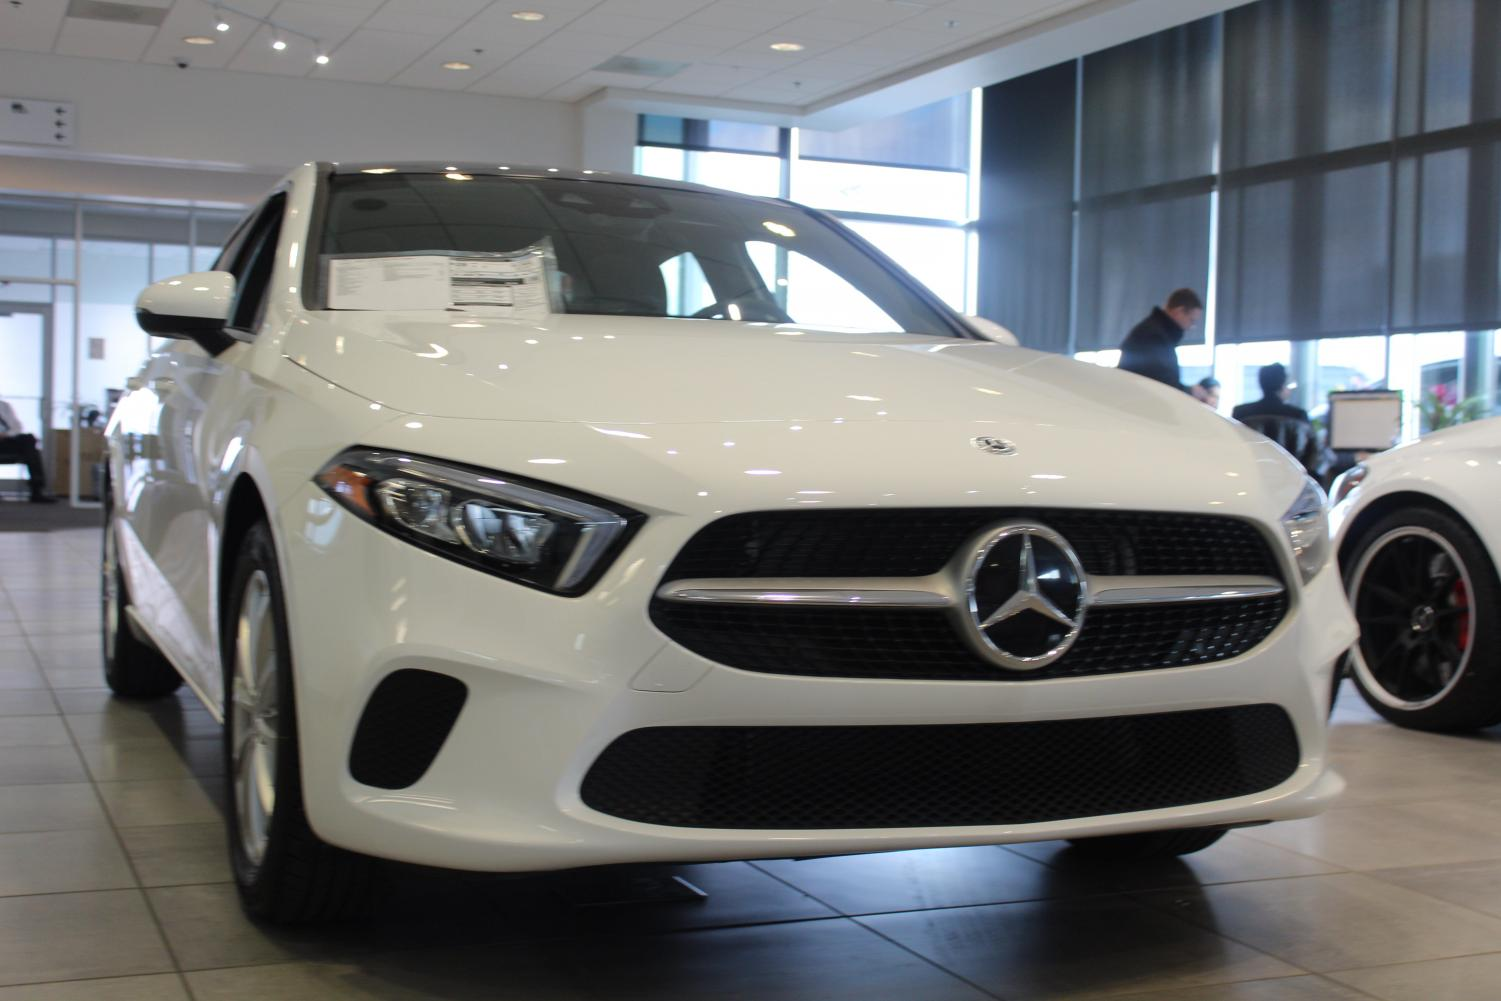 The new Mercedes-Benz A-Class appeals to younger buyers looking for luxury cars because it offers lower starting prices and opportunities for customization.